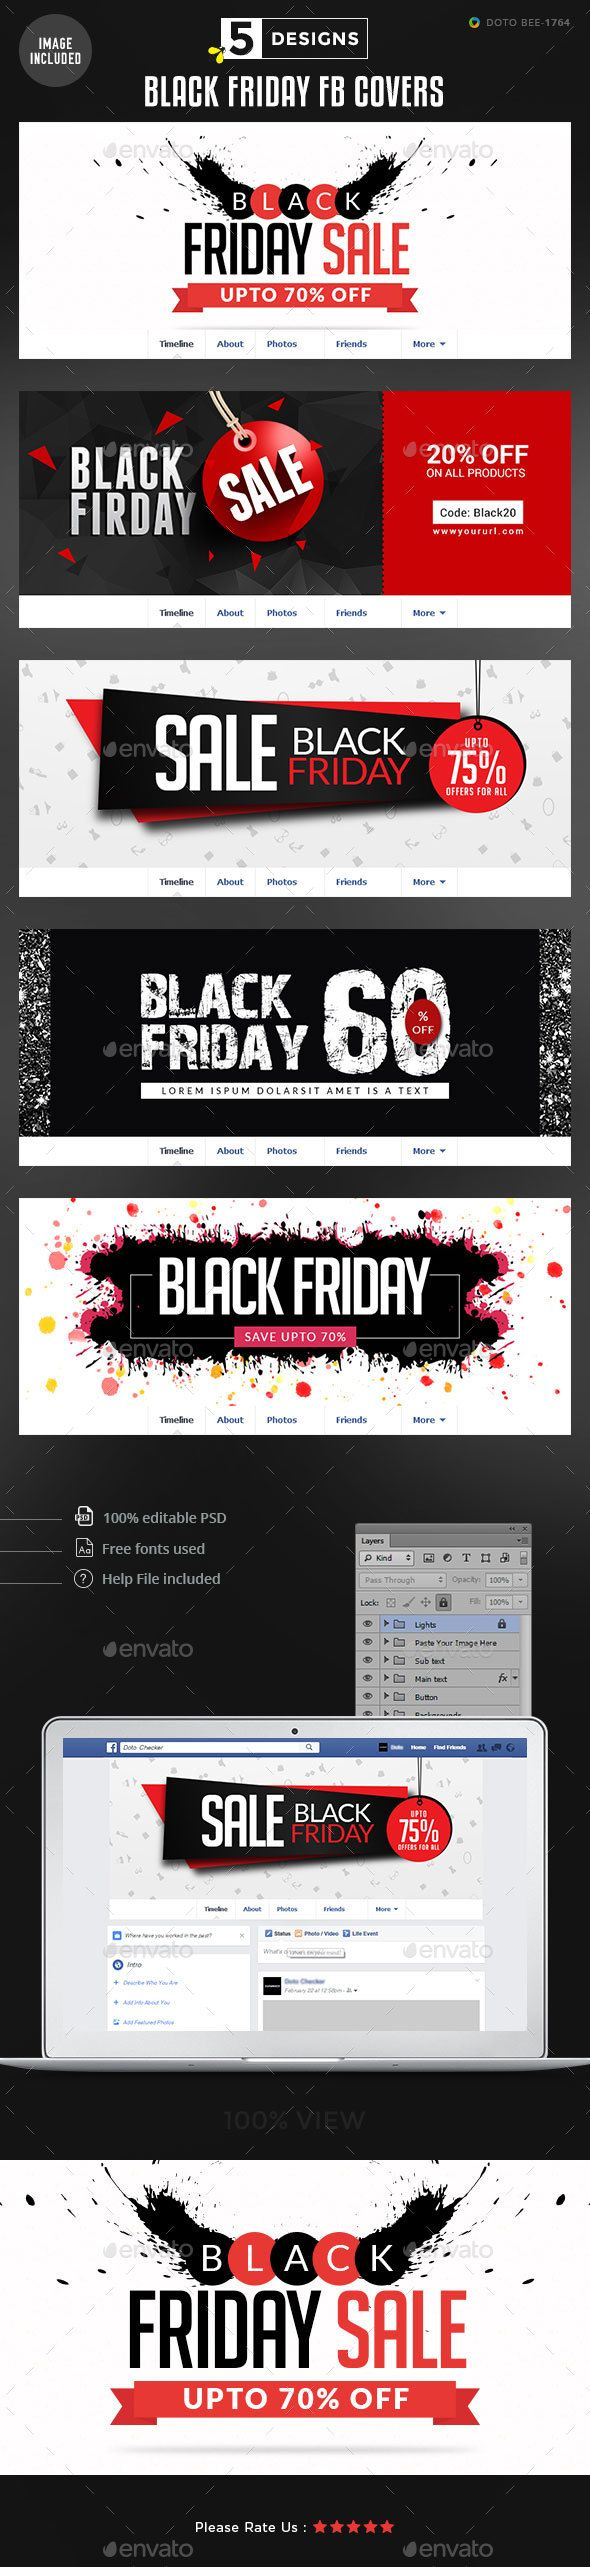 Black Friday Facebook Covers - 5 Designs - Images Included